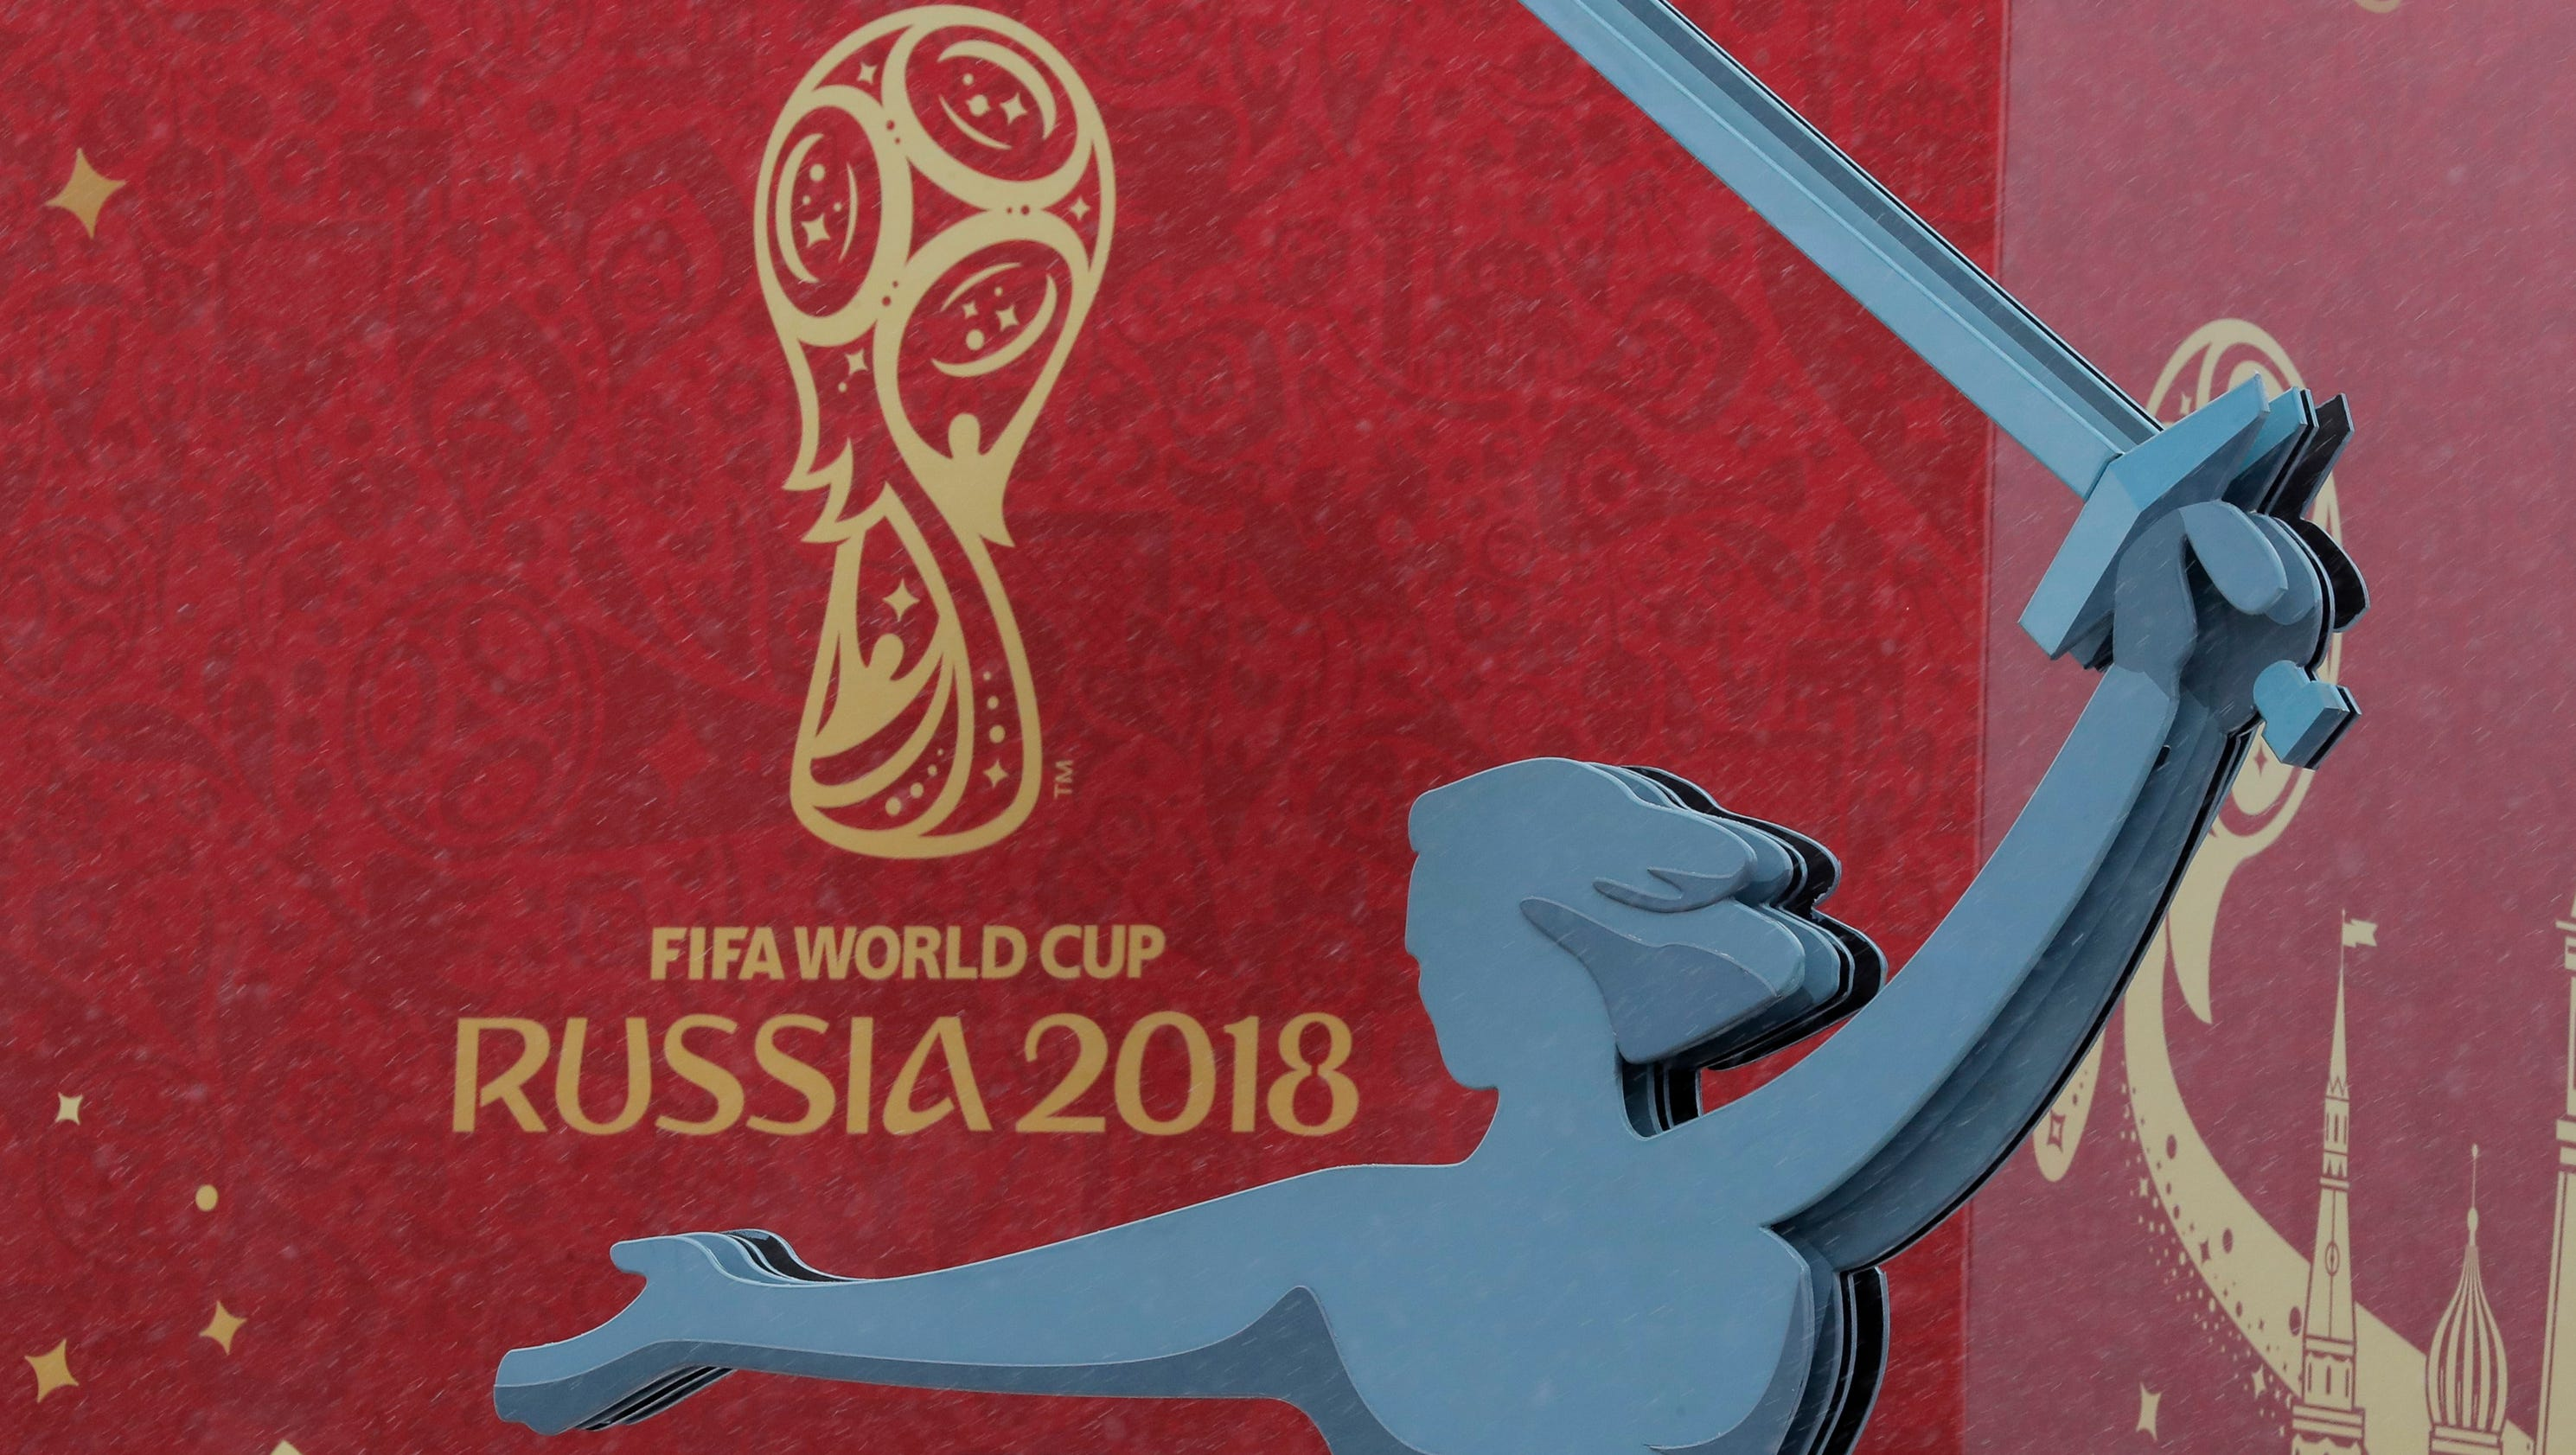 Russia World Cup 2018 Usa